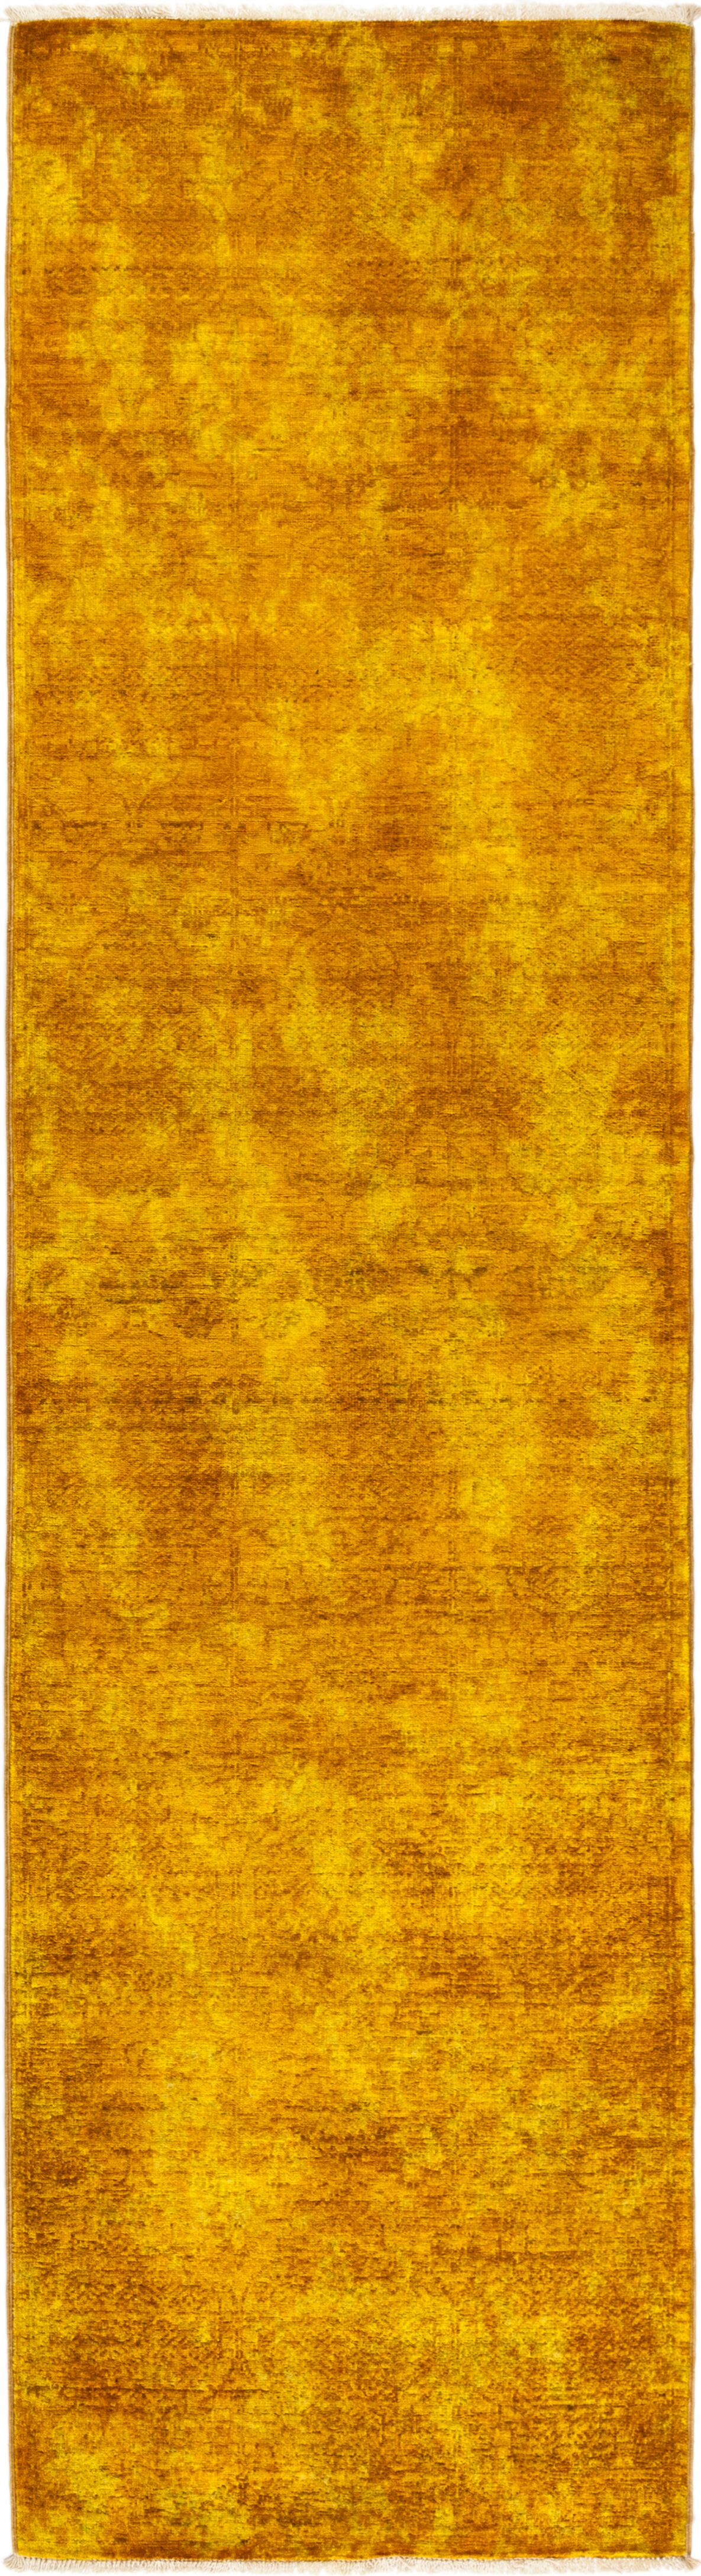 One-of-a-Kind Courter Hand Knotted Wool Yellow Area Rug